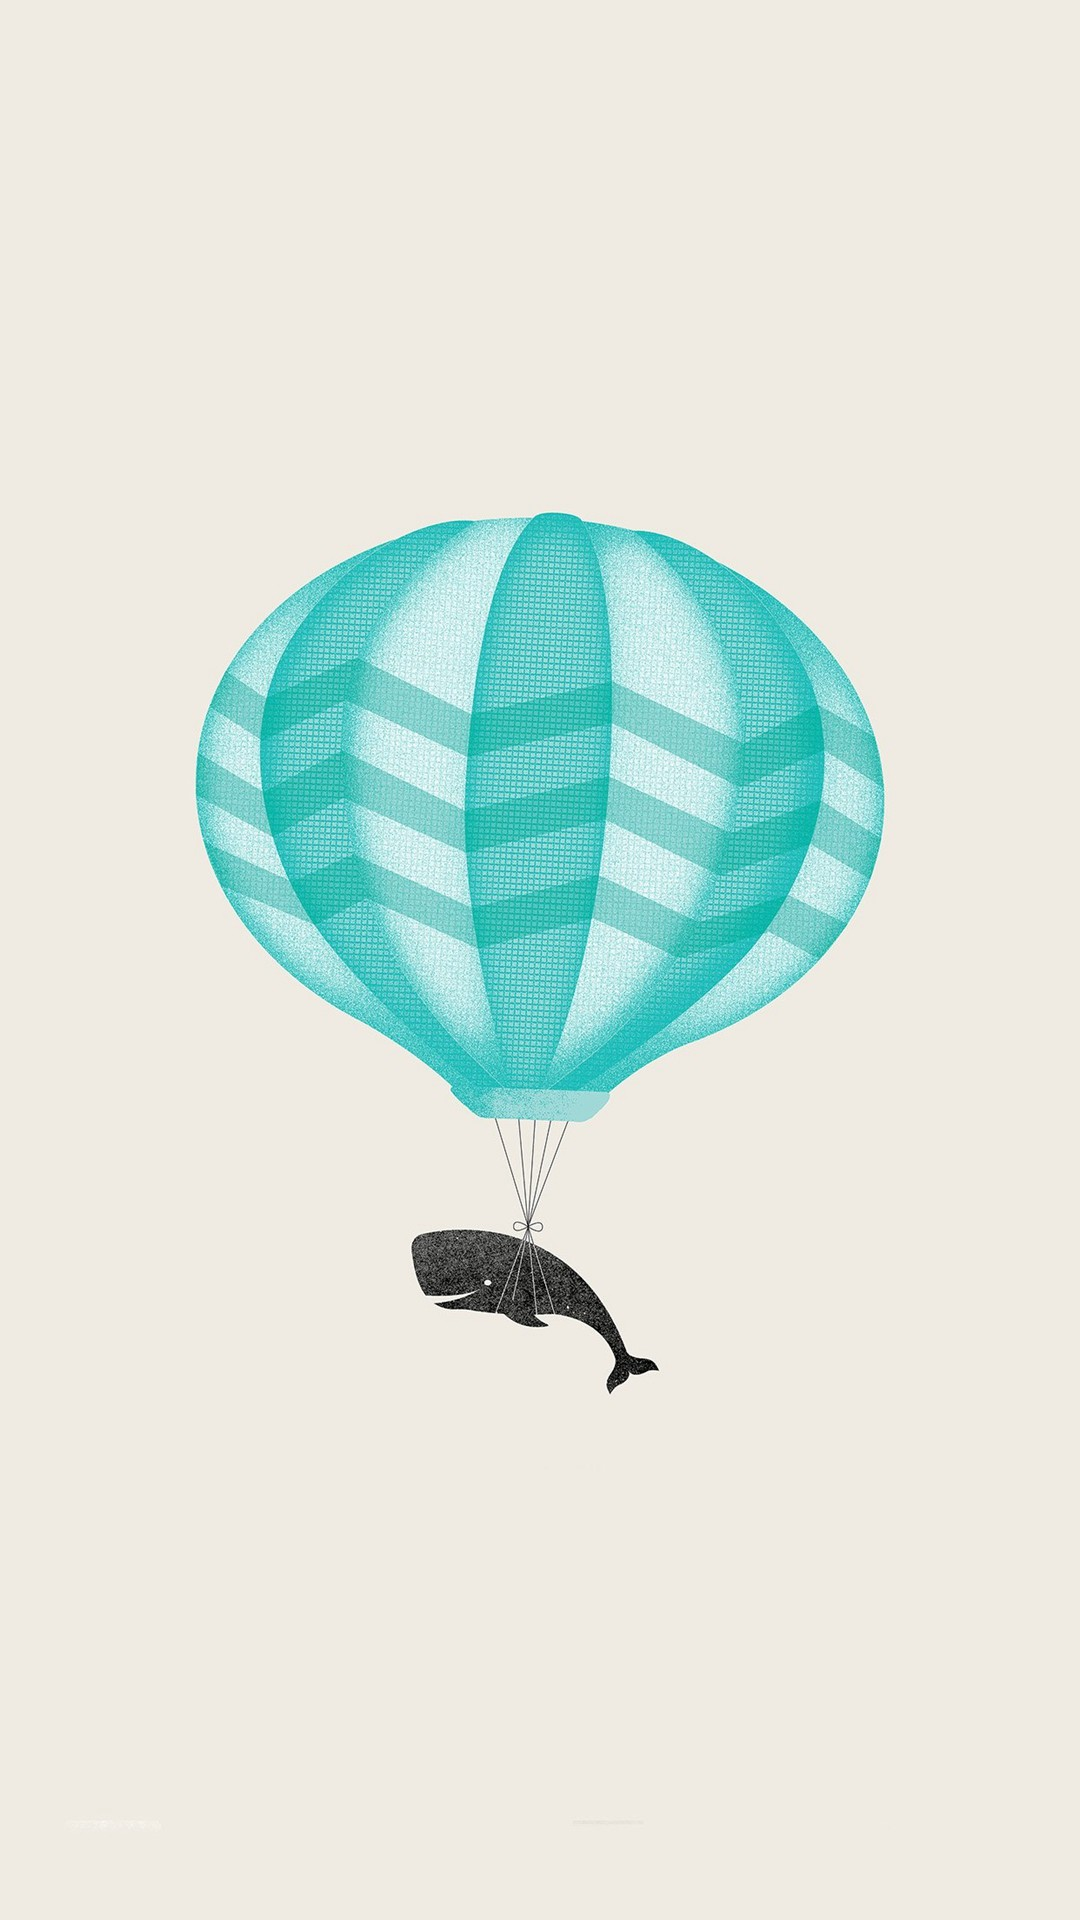 1080x1920 Cute llustration Whale Balloon Art #iPhone #6 #plus #wallpaper